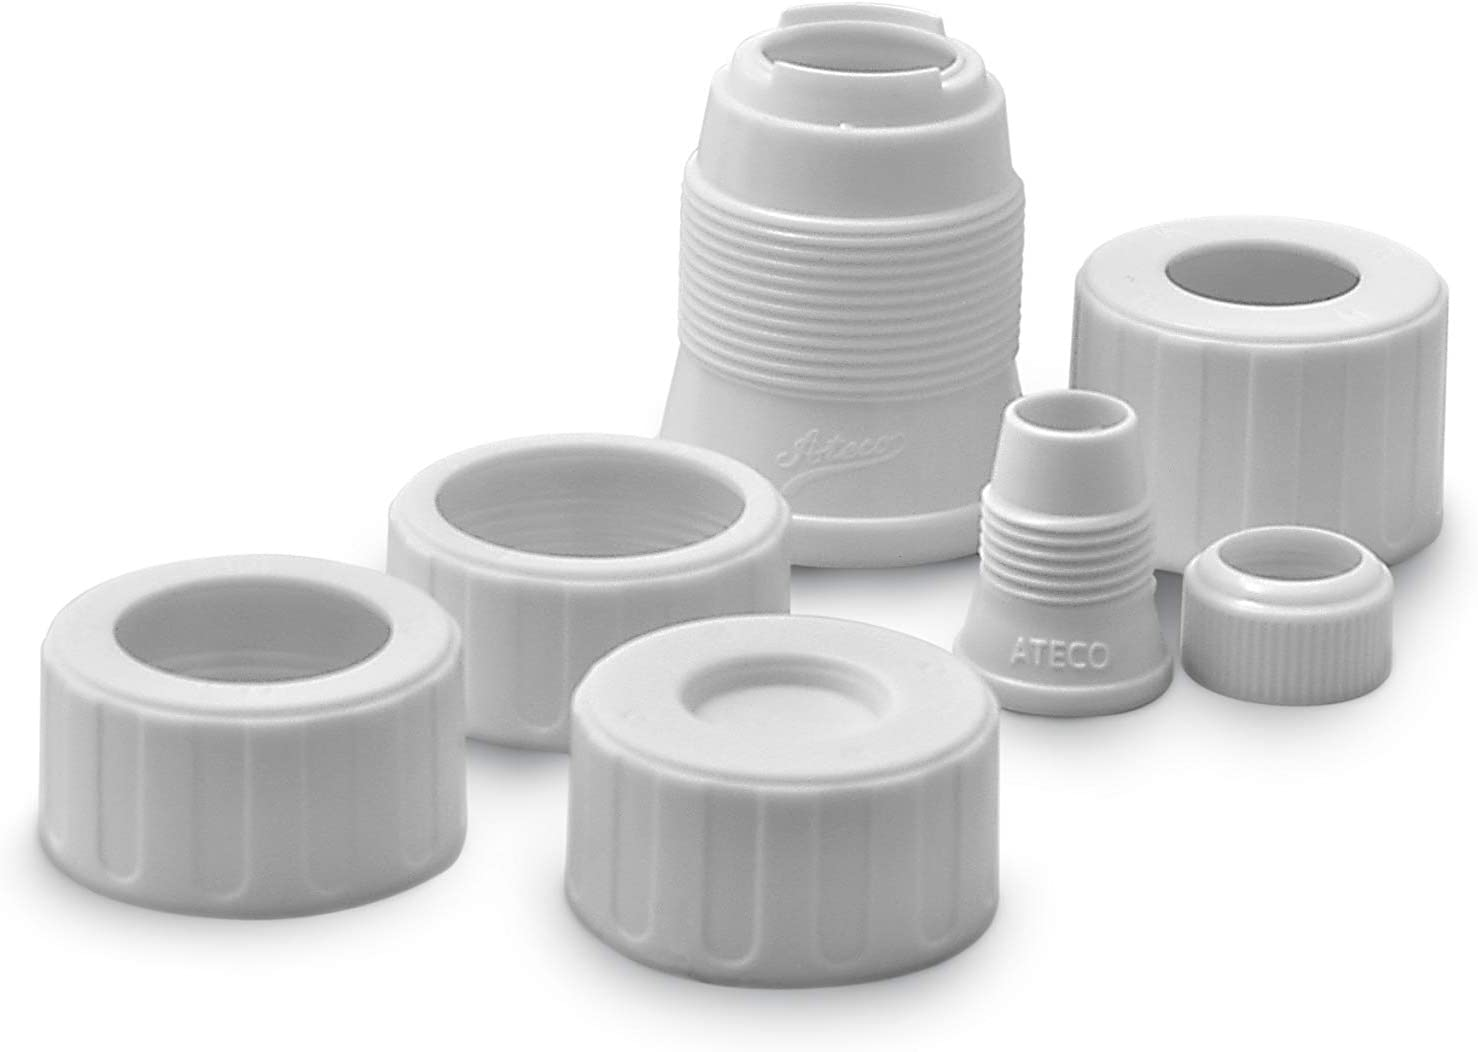 Ateco Universal Pastry Coupler and Cap Set | 7 Piece Set | Works with 250 Ateco decorating Tubes plus tips from other brands